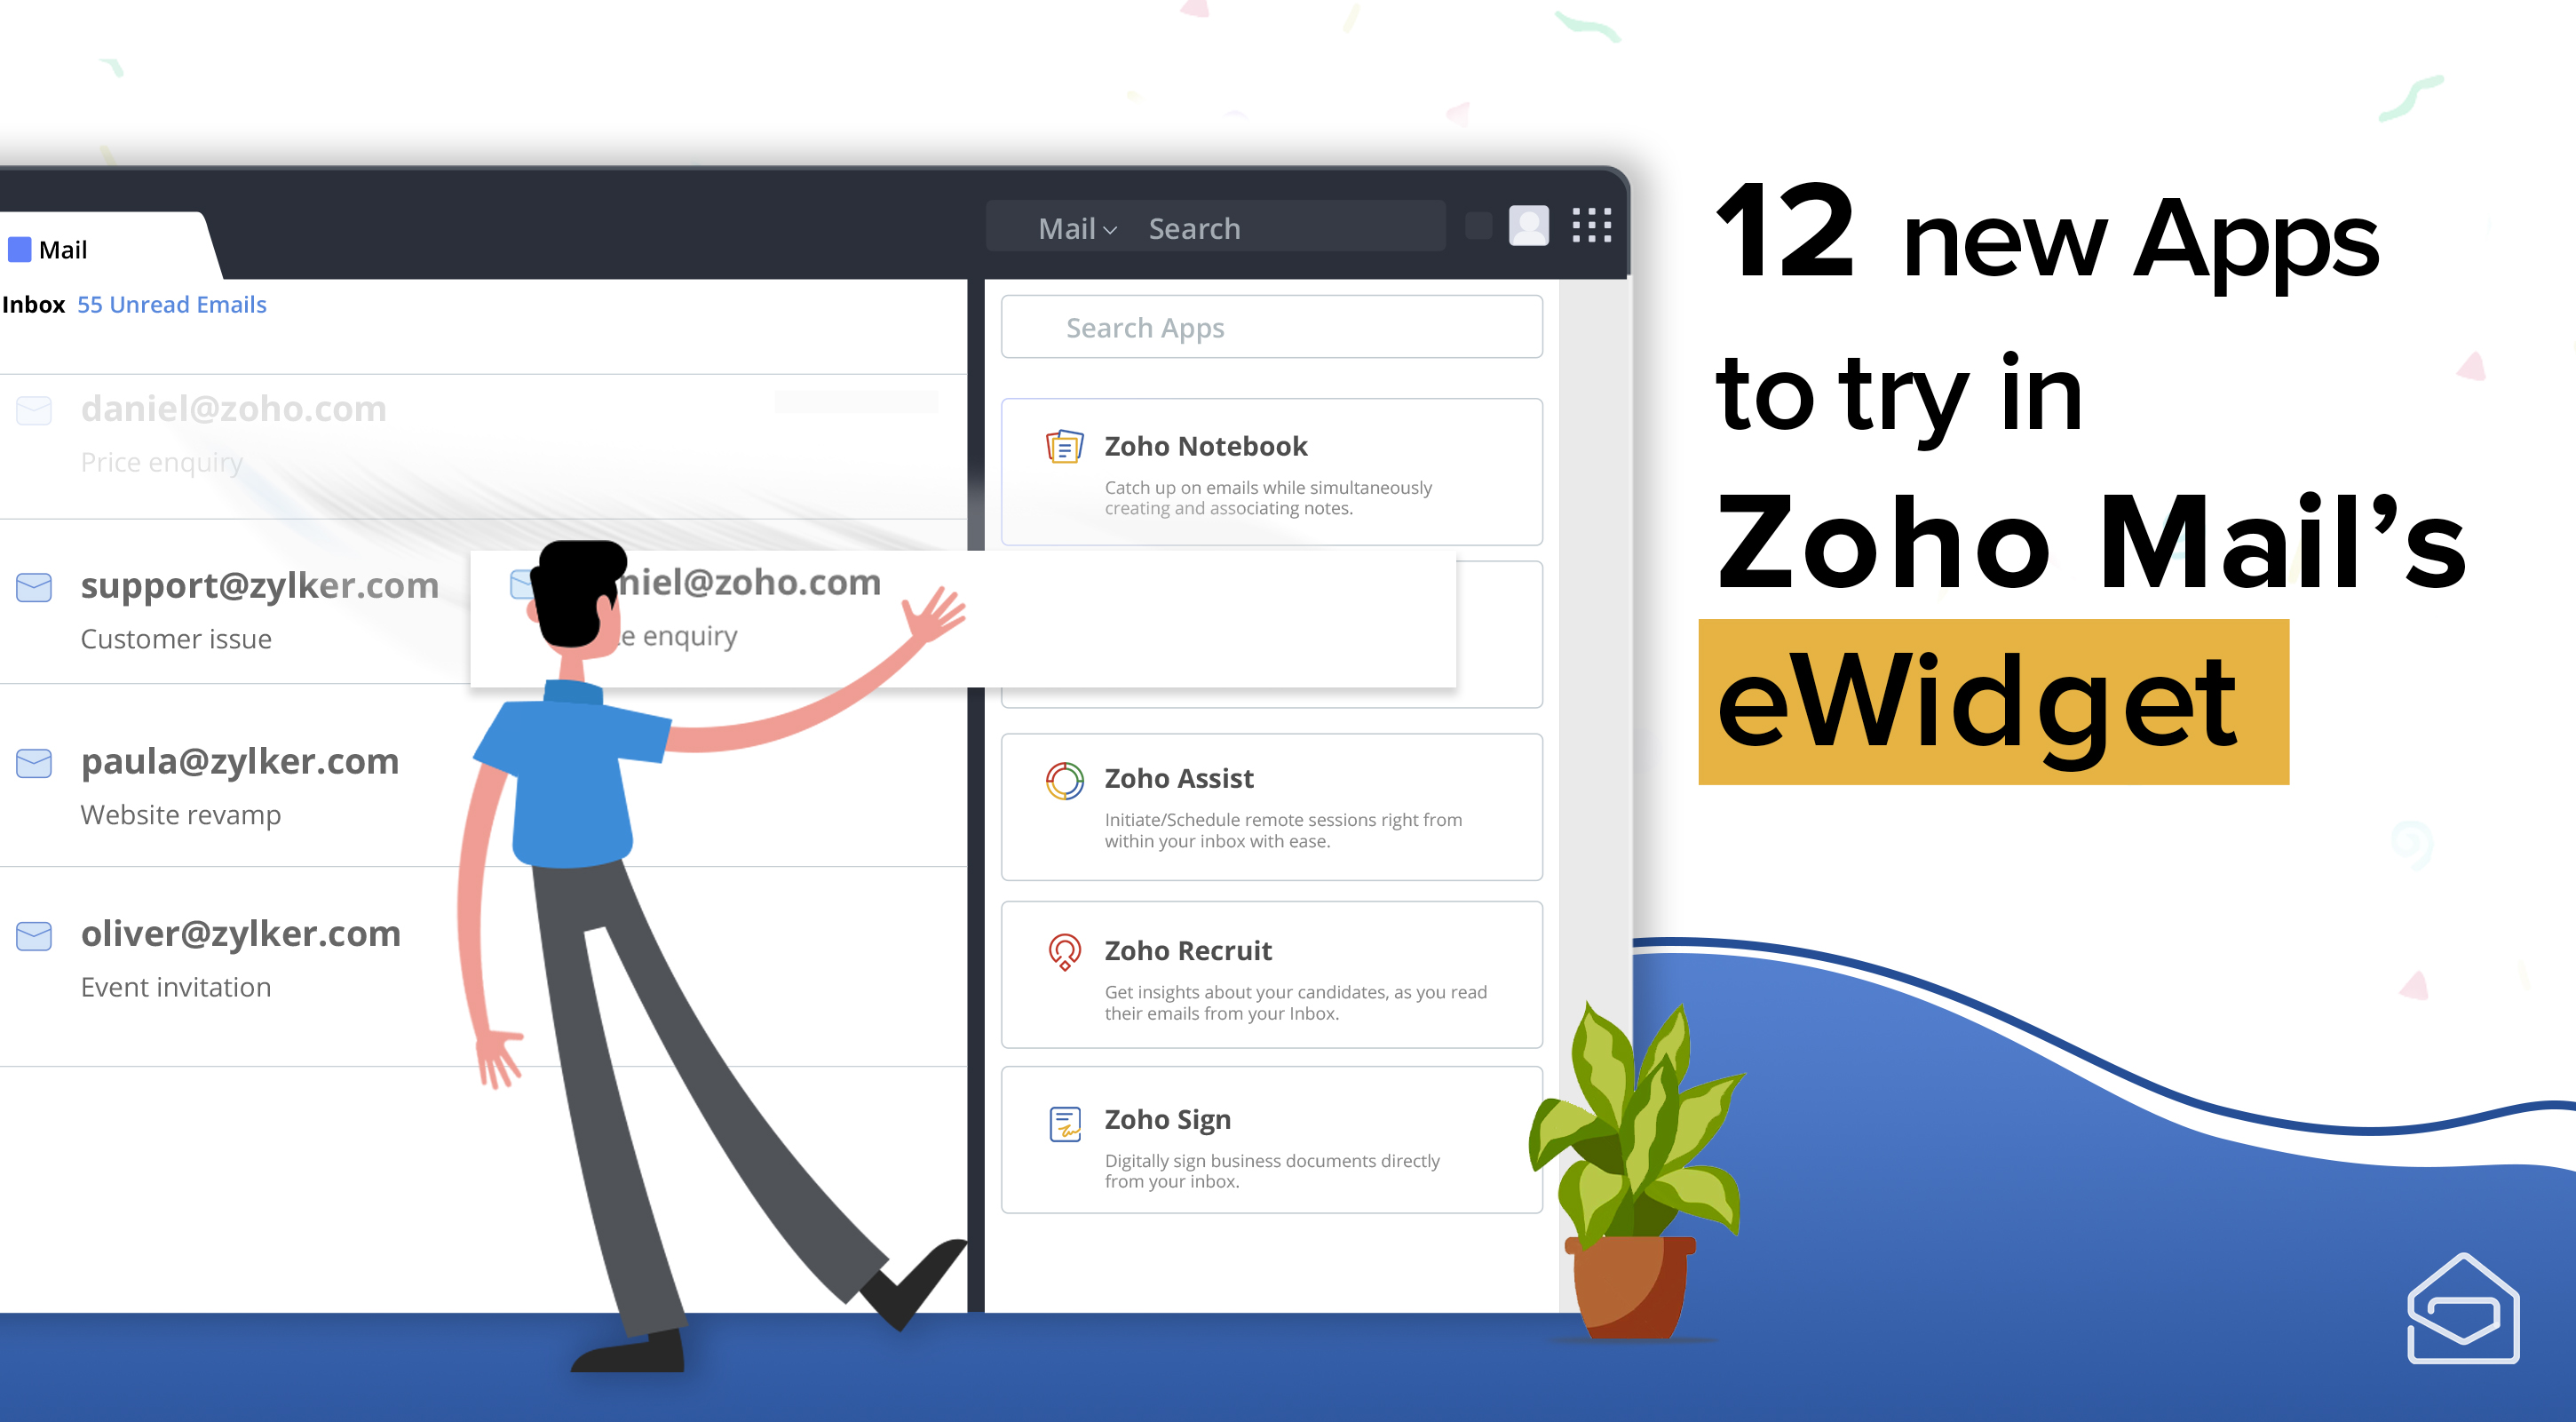 12 new apps to try in Zoho Mail's eWidget